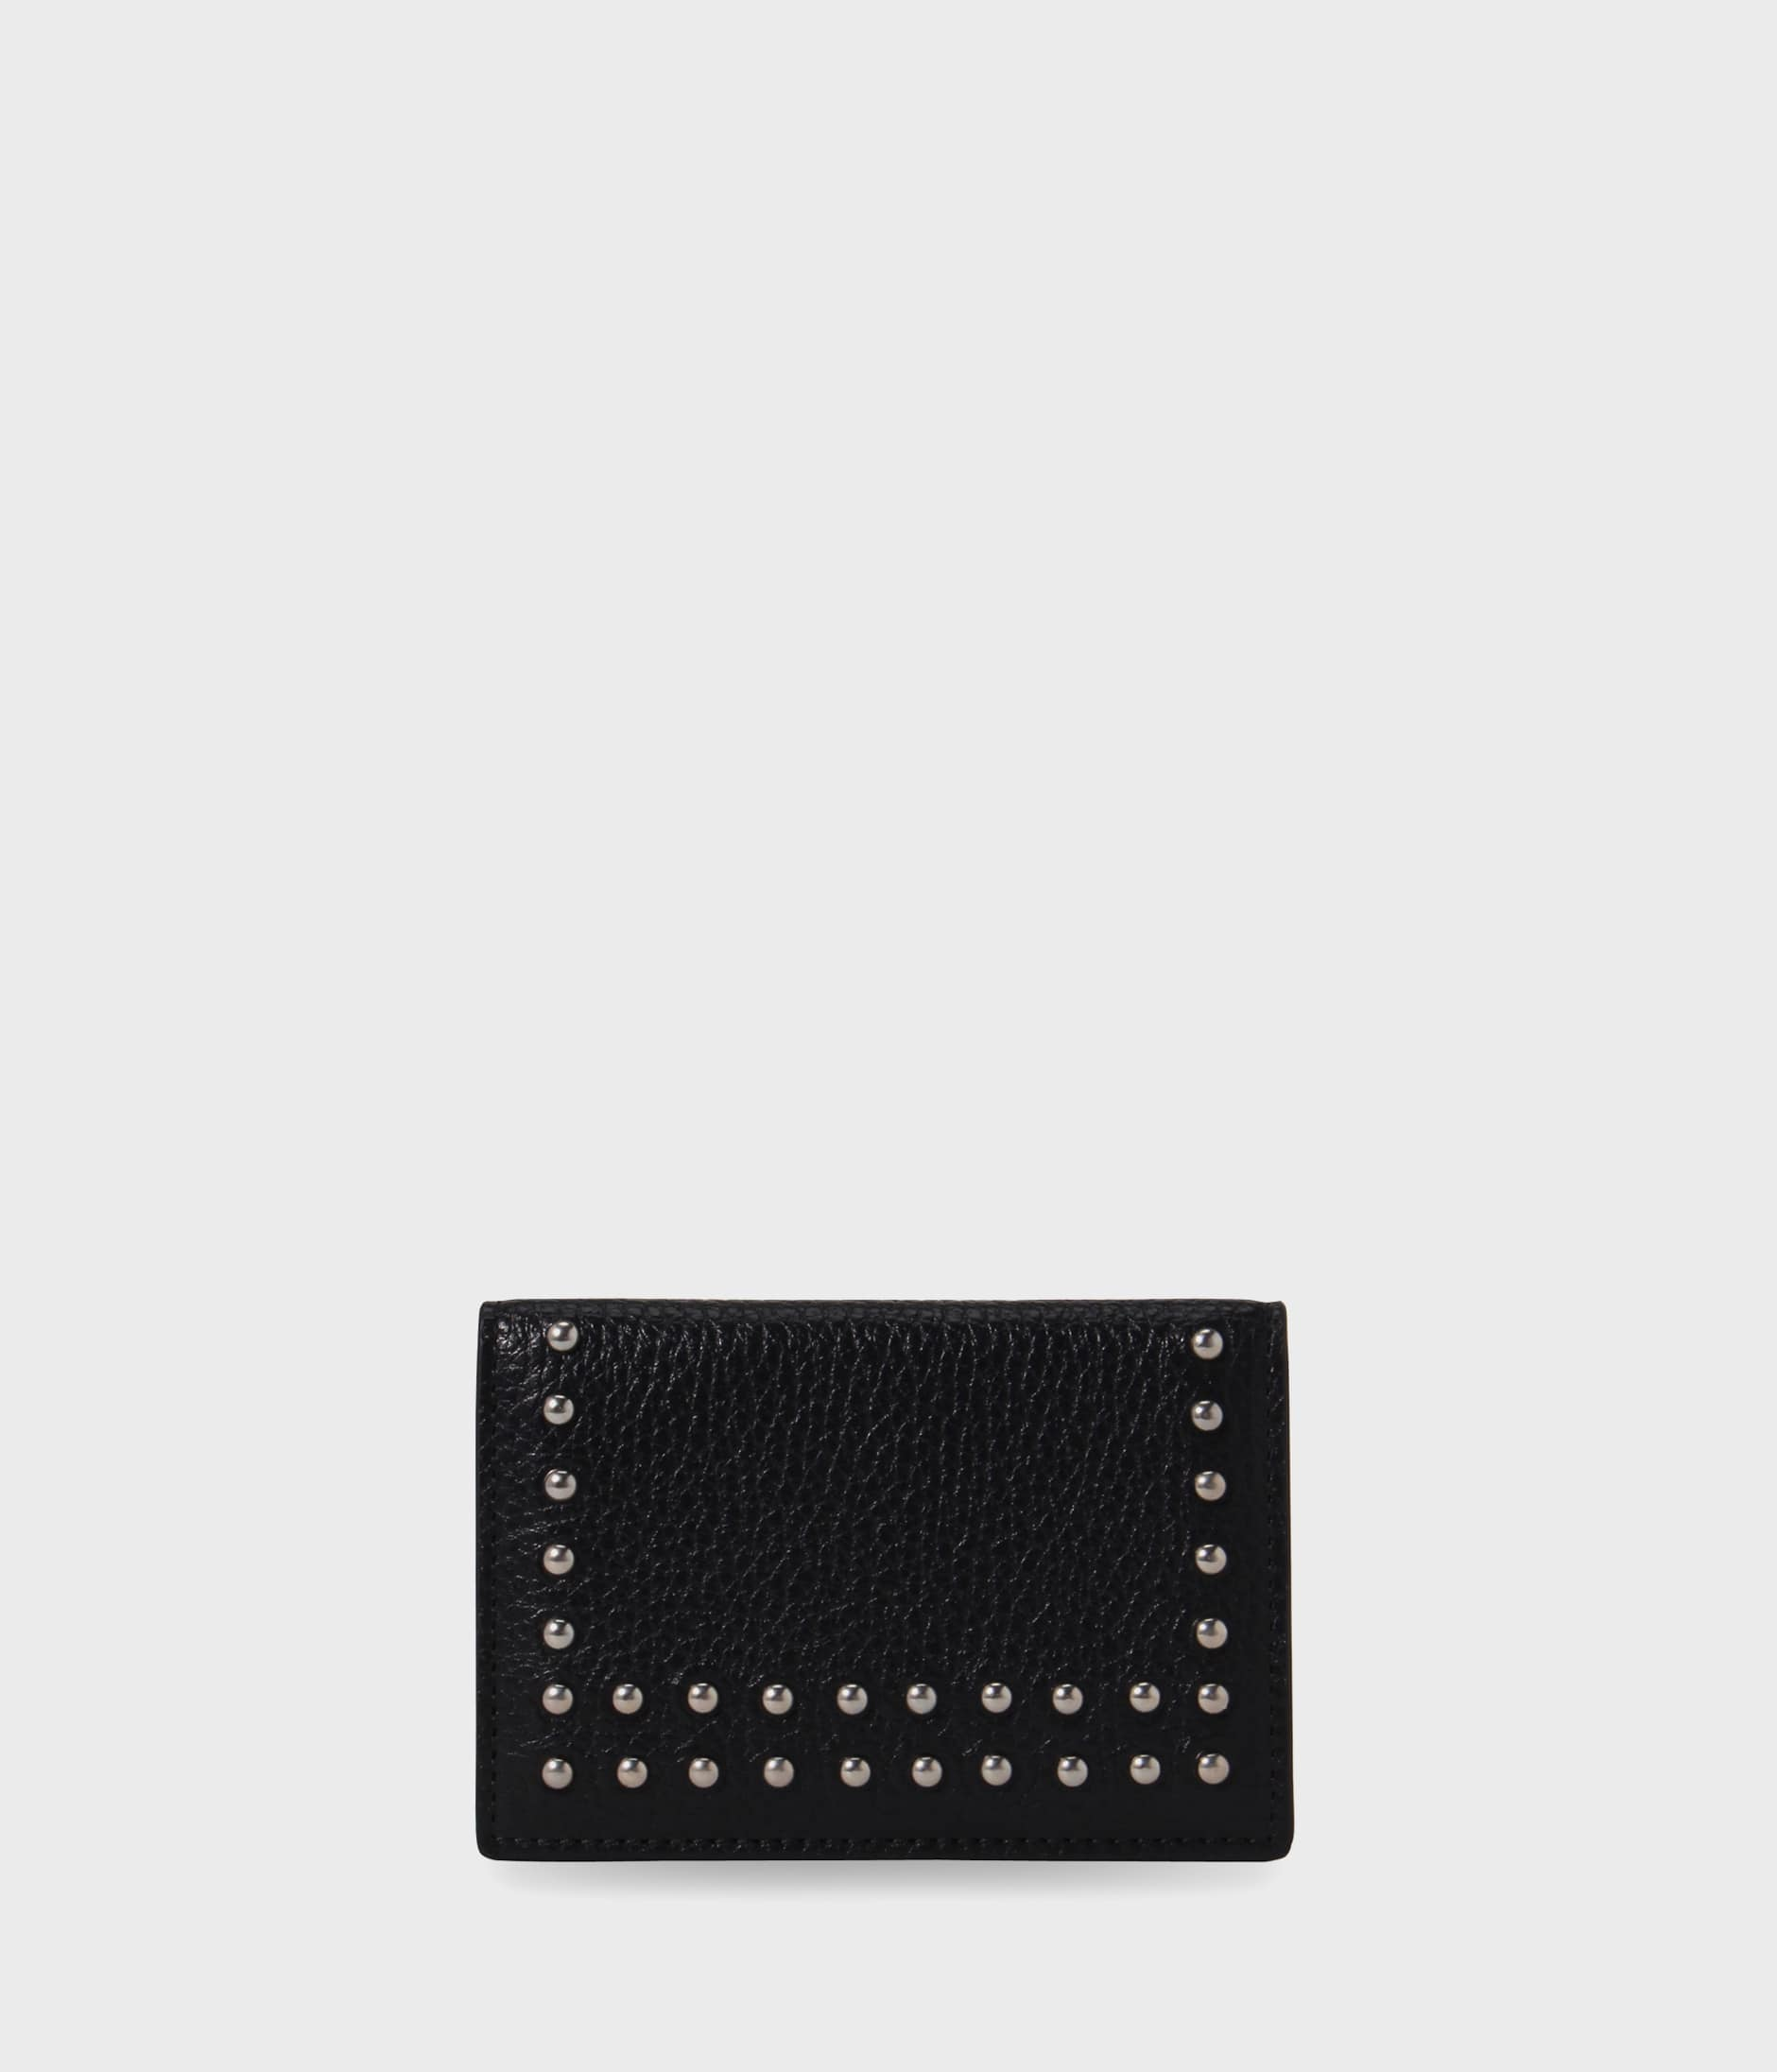 VISIT CARD HOLDER WITH STUDS 詳細画像 BLACK 1